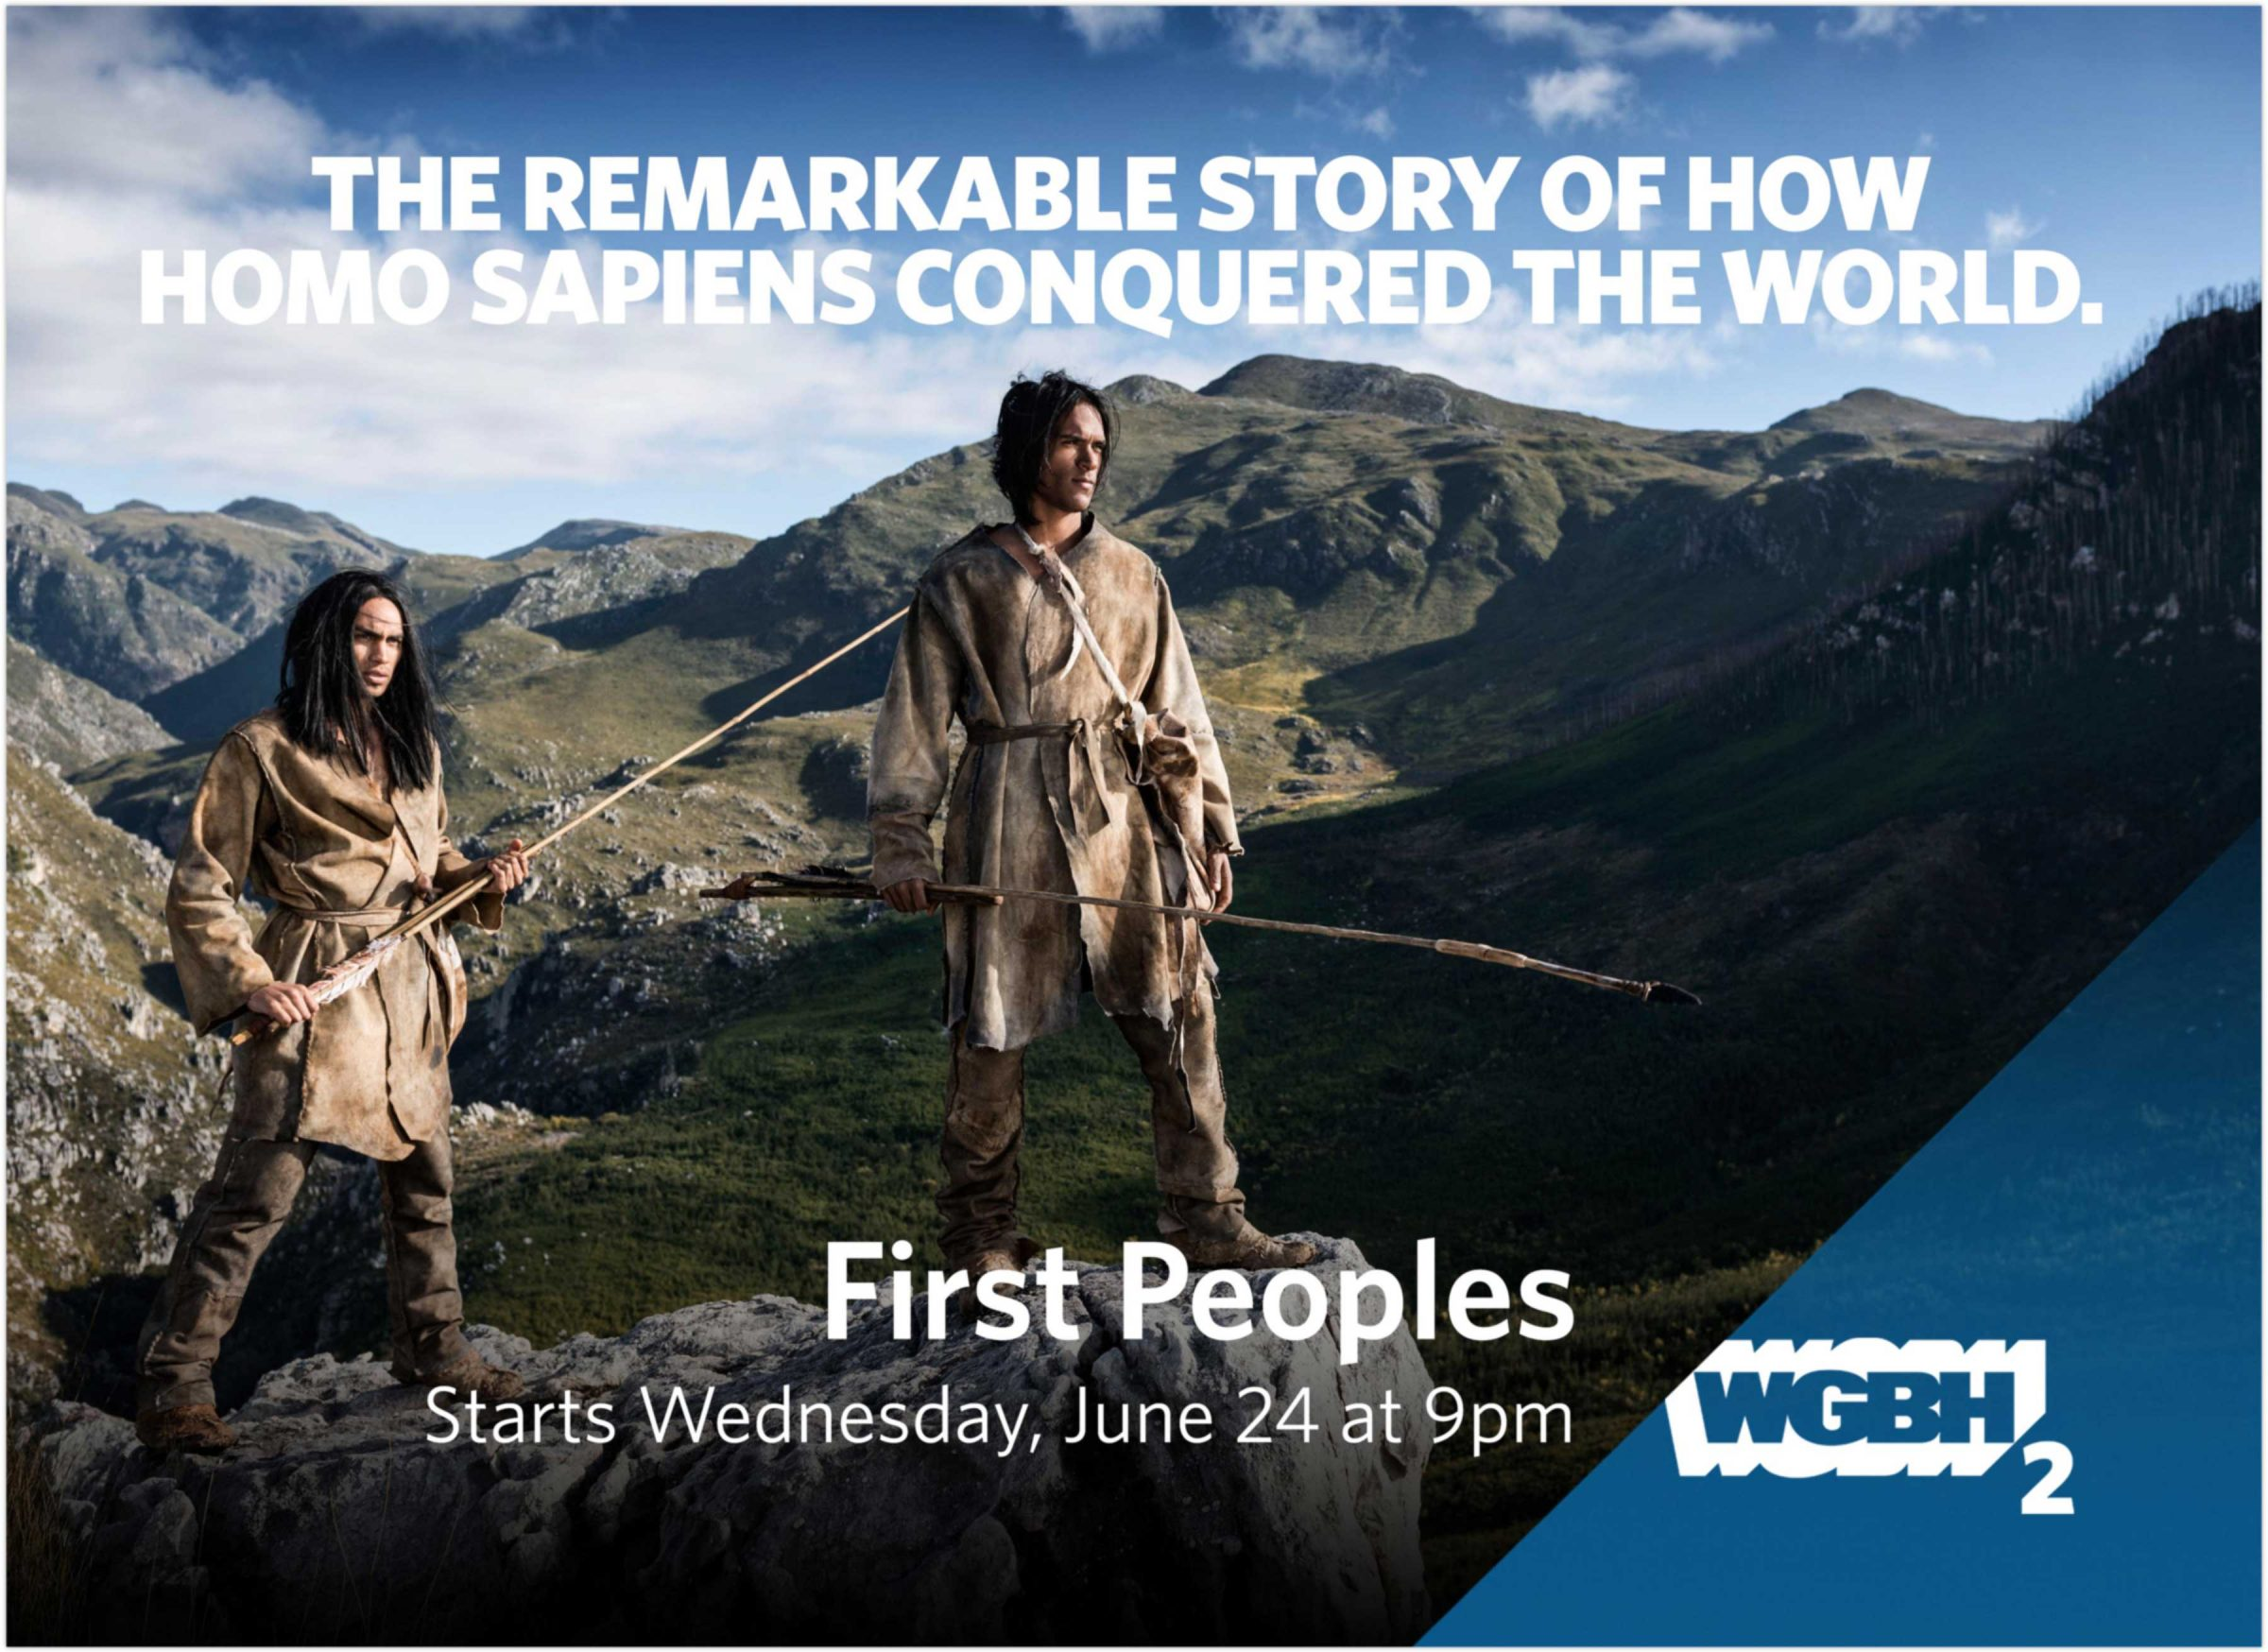 WGBH First Peoples digital advertisement